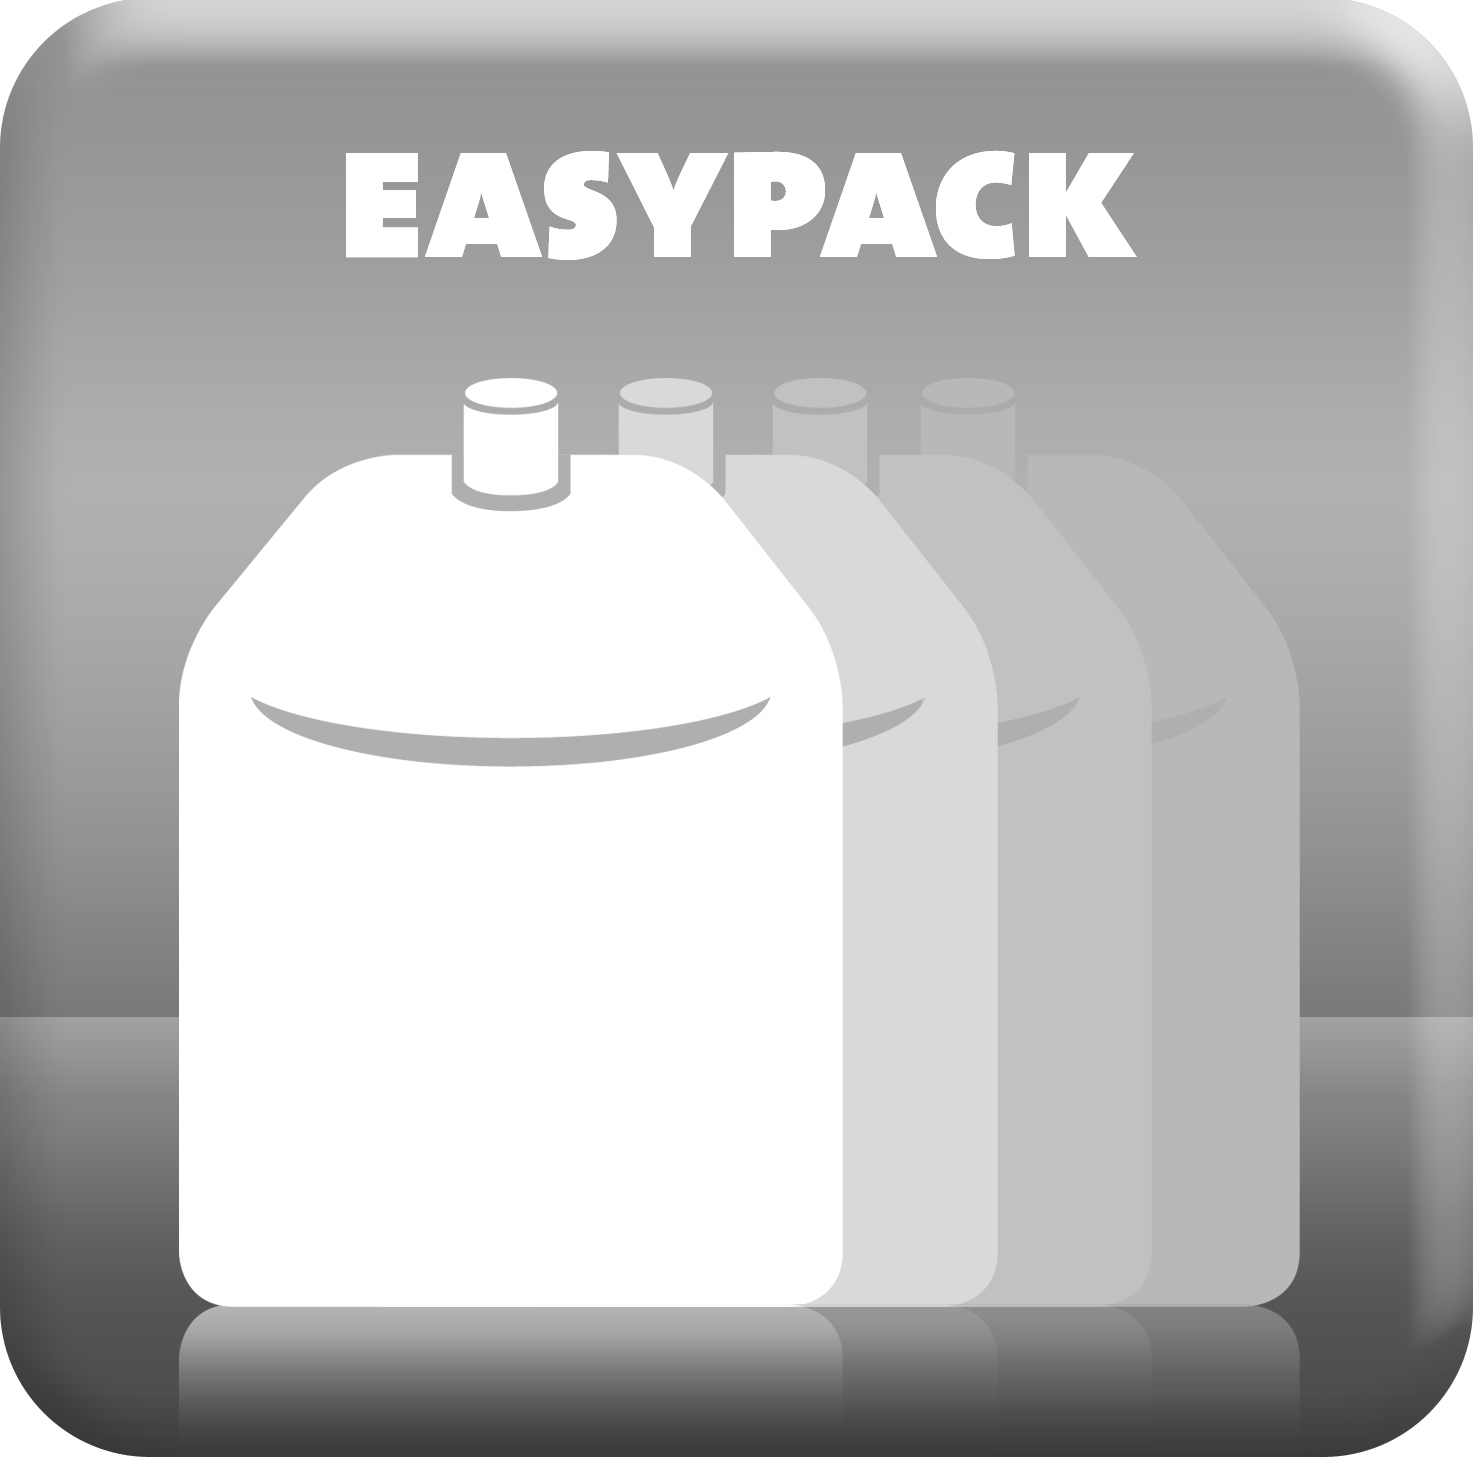 ICONS_Easypack